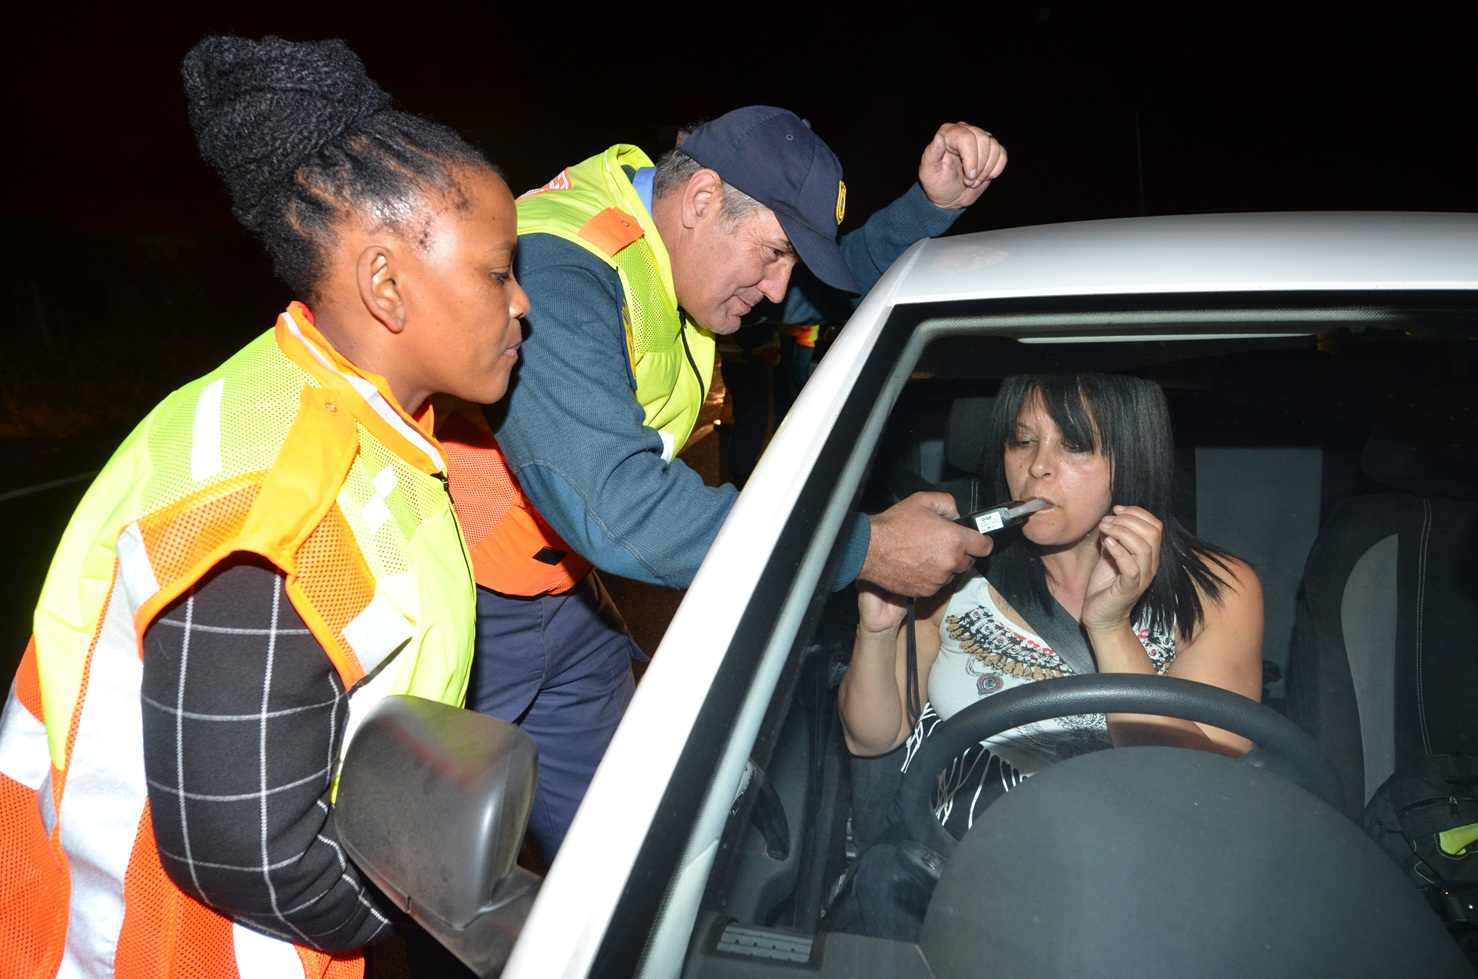 Minister Mbombo and Senior Provincial Inspector Carel Volschenck with a motorist.